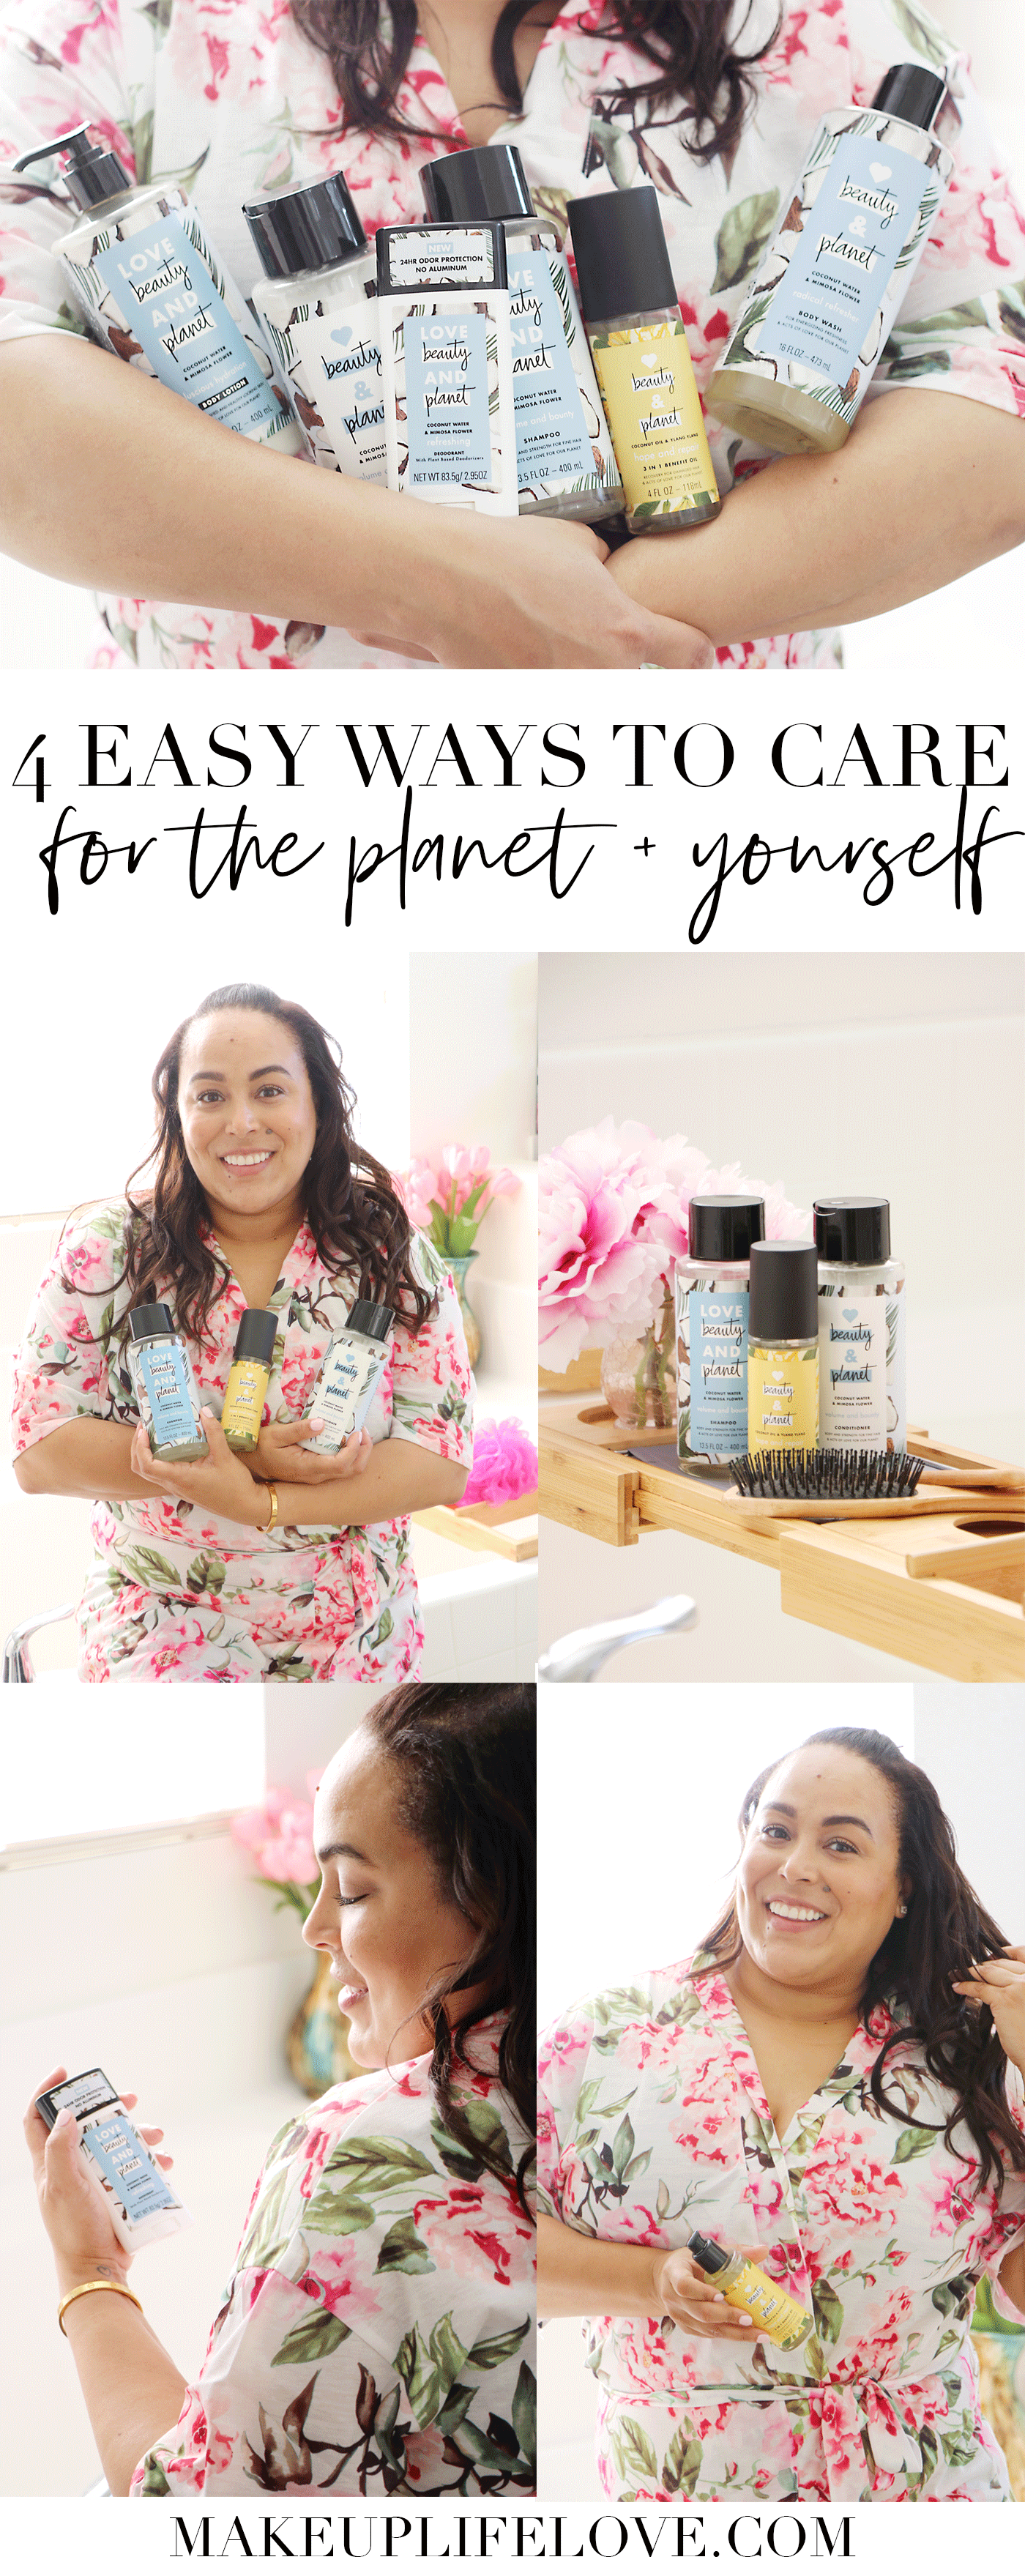 Earth month is here! Curious how to take care of the planet? Los Angeles Lifestyle Blogger Makeup Life and Love is sharing her top 4 tips to take care of the planet and yourself! See them HERE!